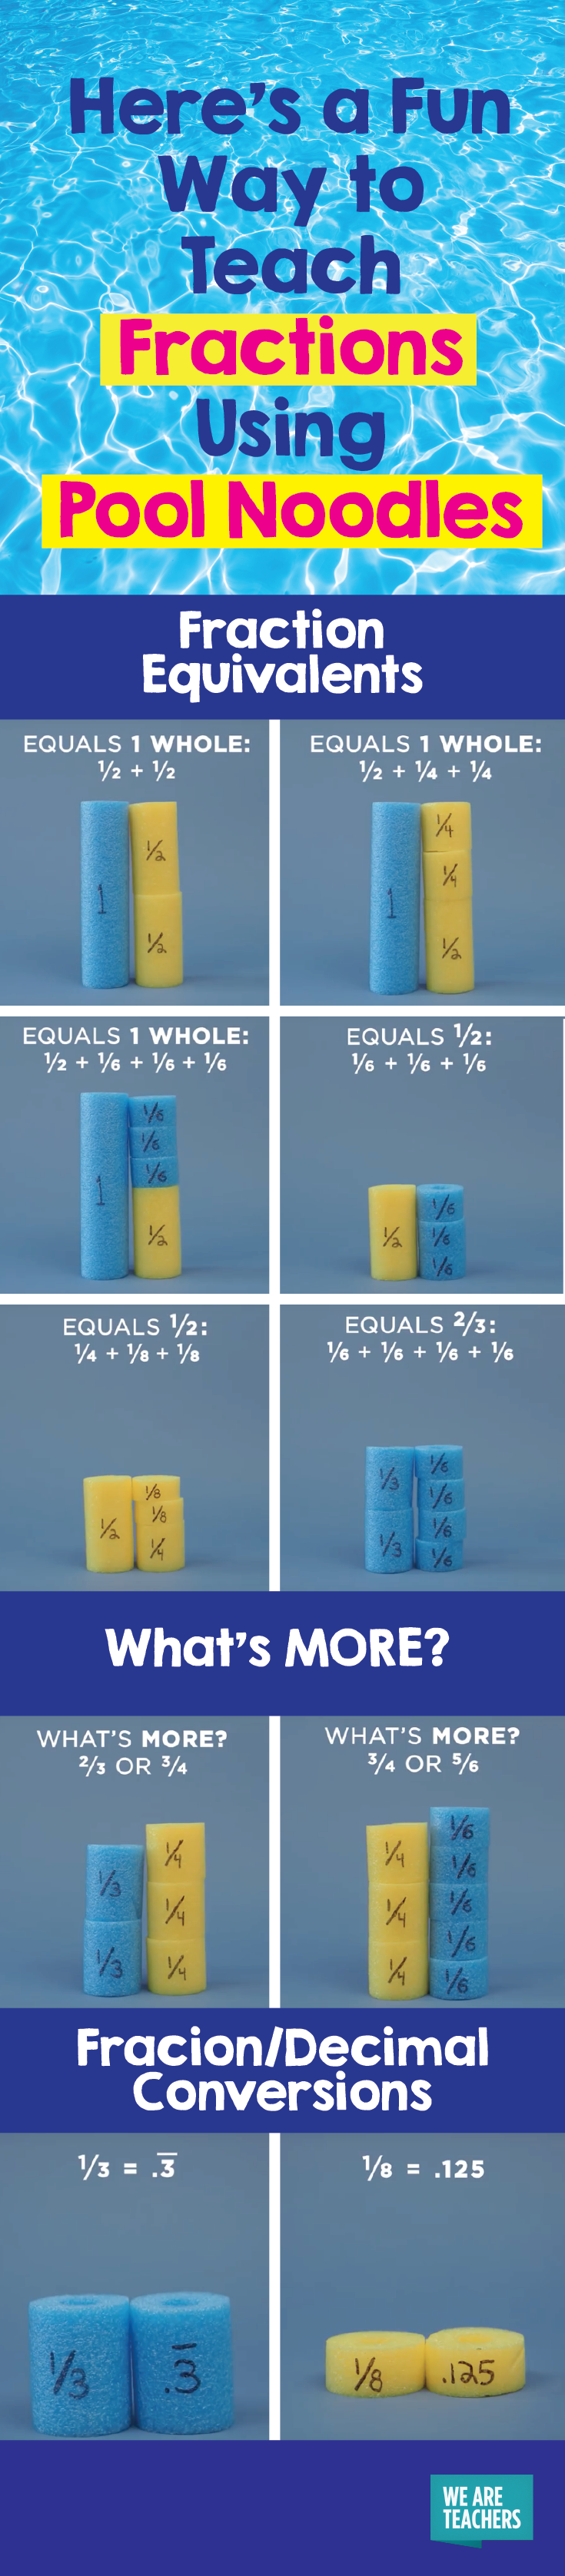 Here\'s a Fun Way to Teach Fractions Using Pool Noodles | Math ...